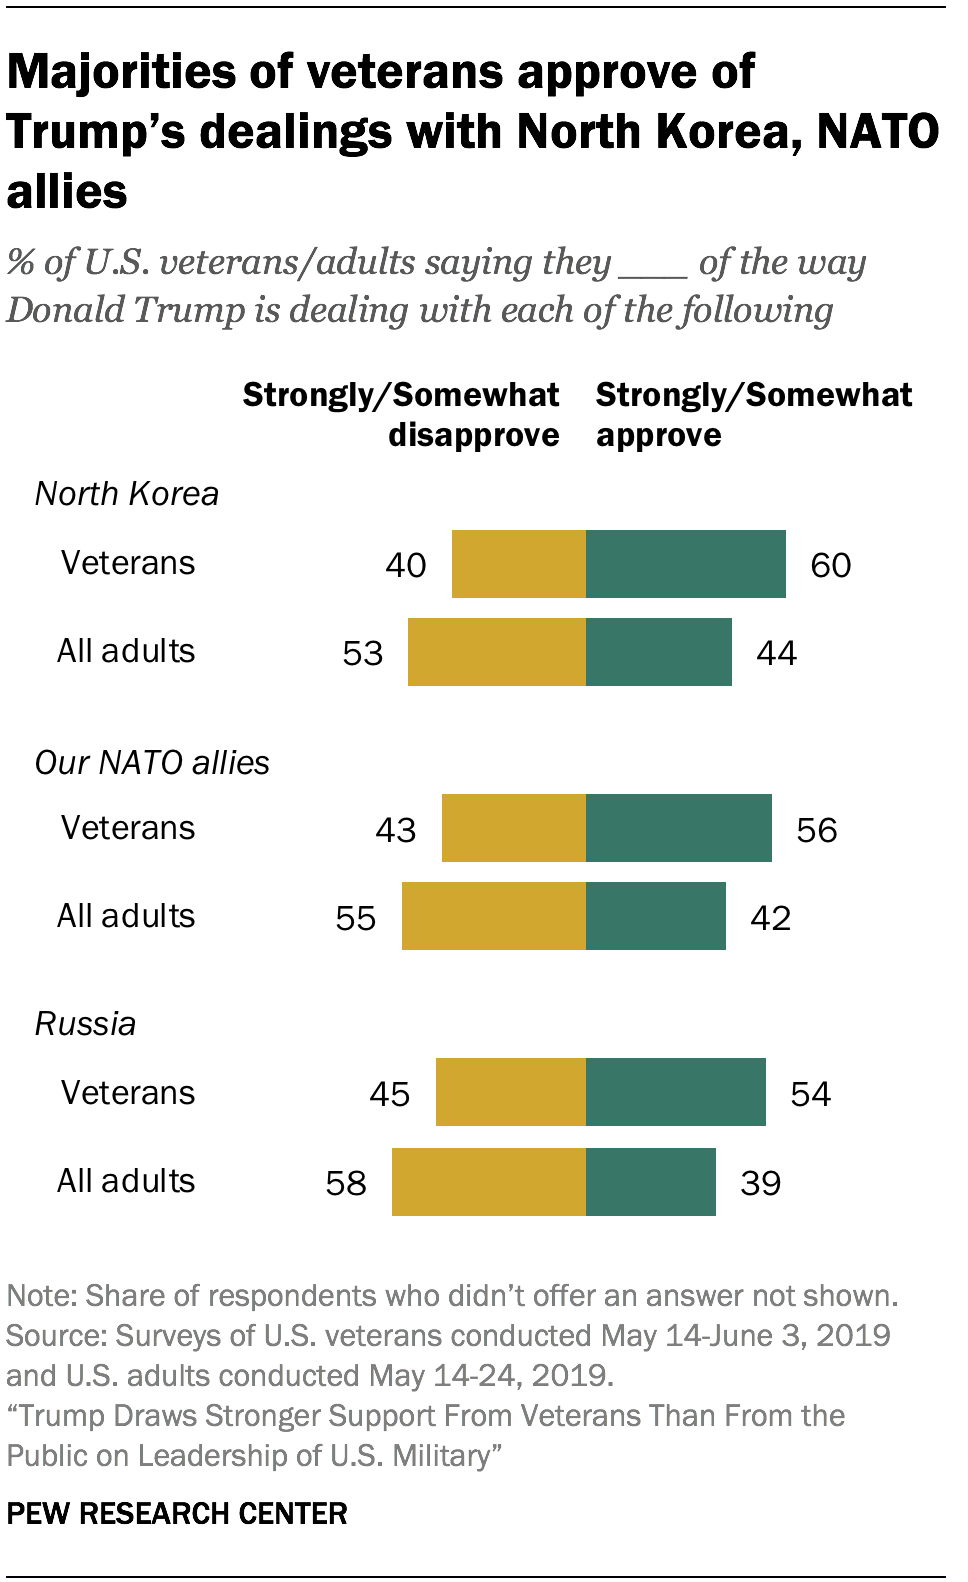 Trump draws stronger support from veterans than from the public